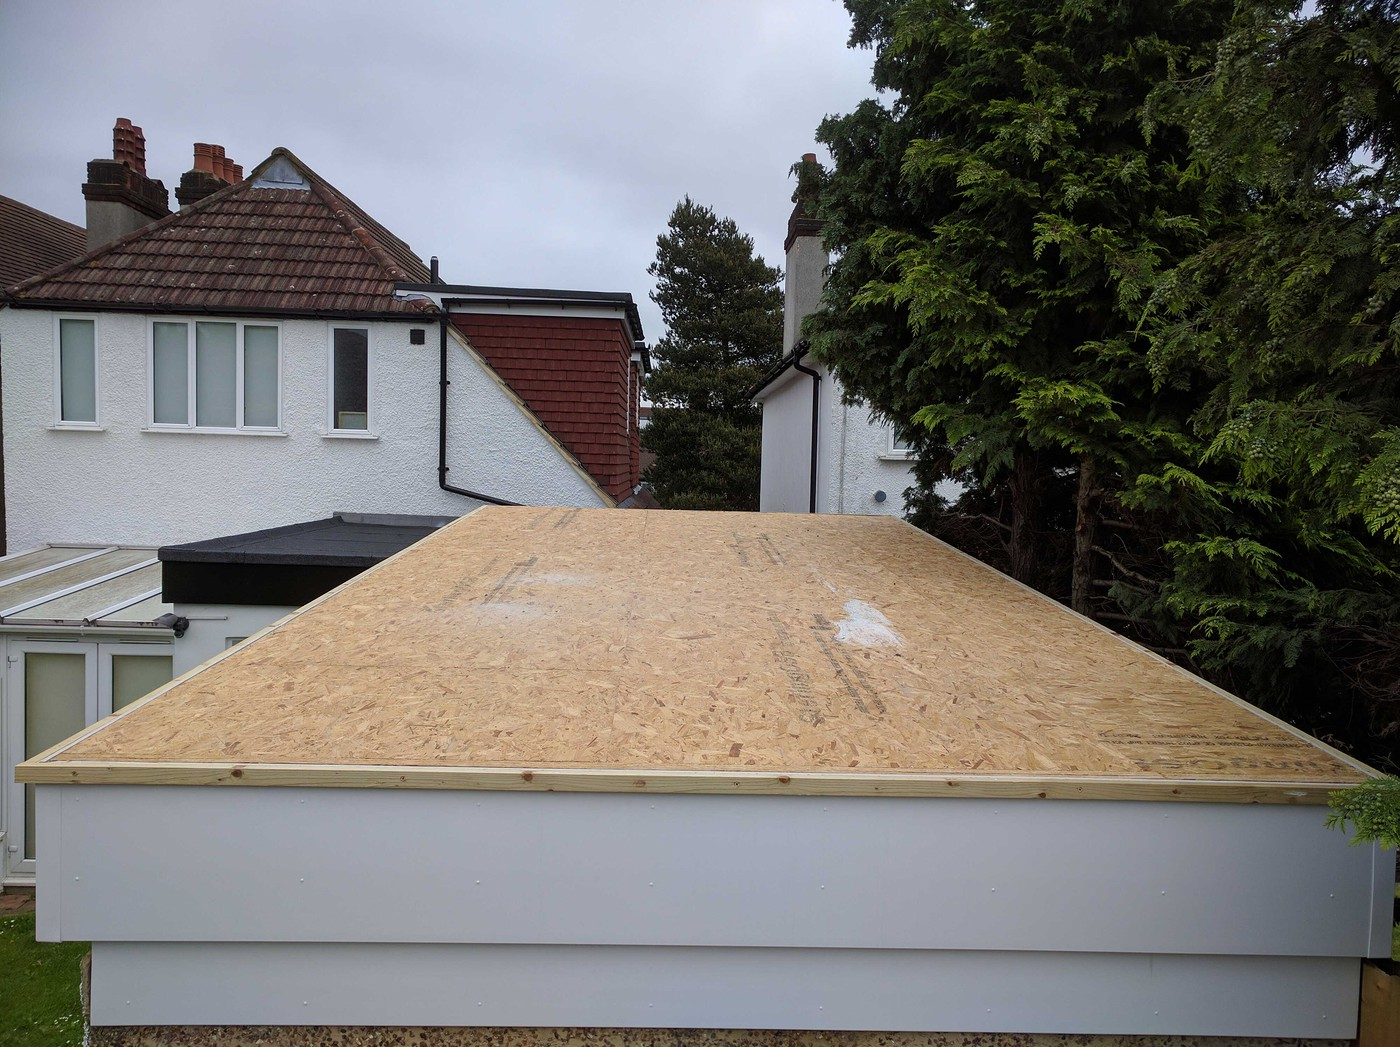 Warm Flat Roof Connected To Cold Pitched Roof Confused